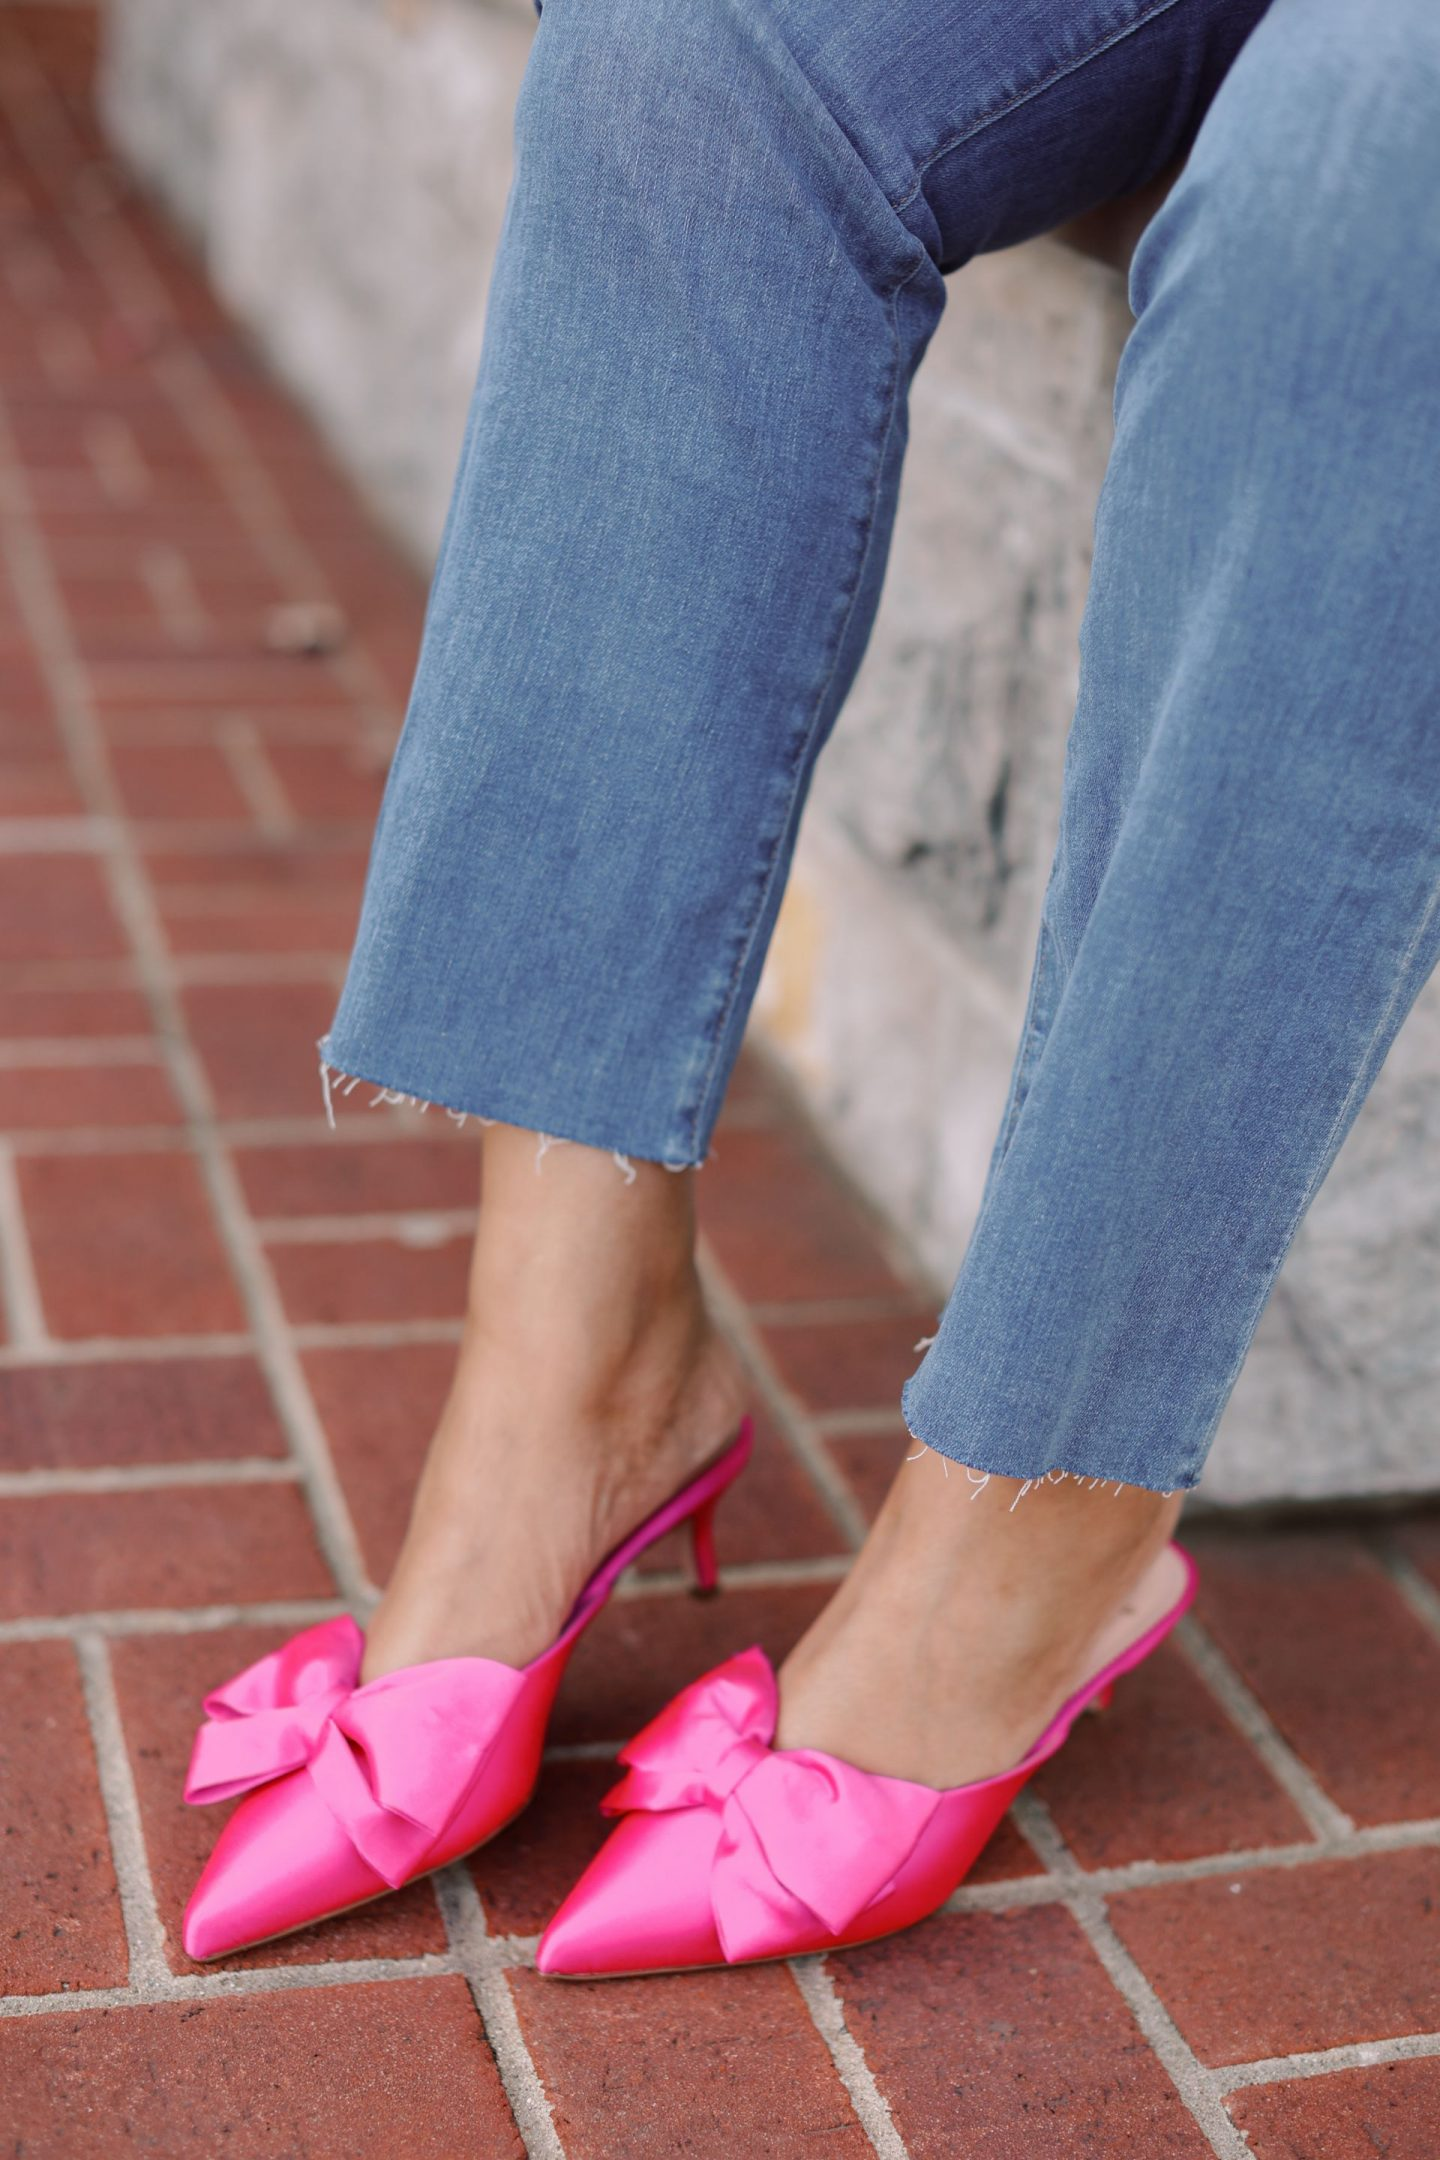 Pink Clothing by popular Kentucky fashion blog, Really Rynetta: image of a woman wearing jeans and pink bow point toe heels.